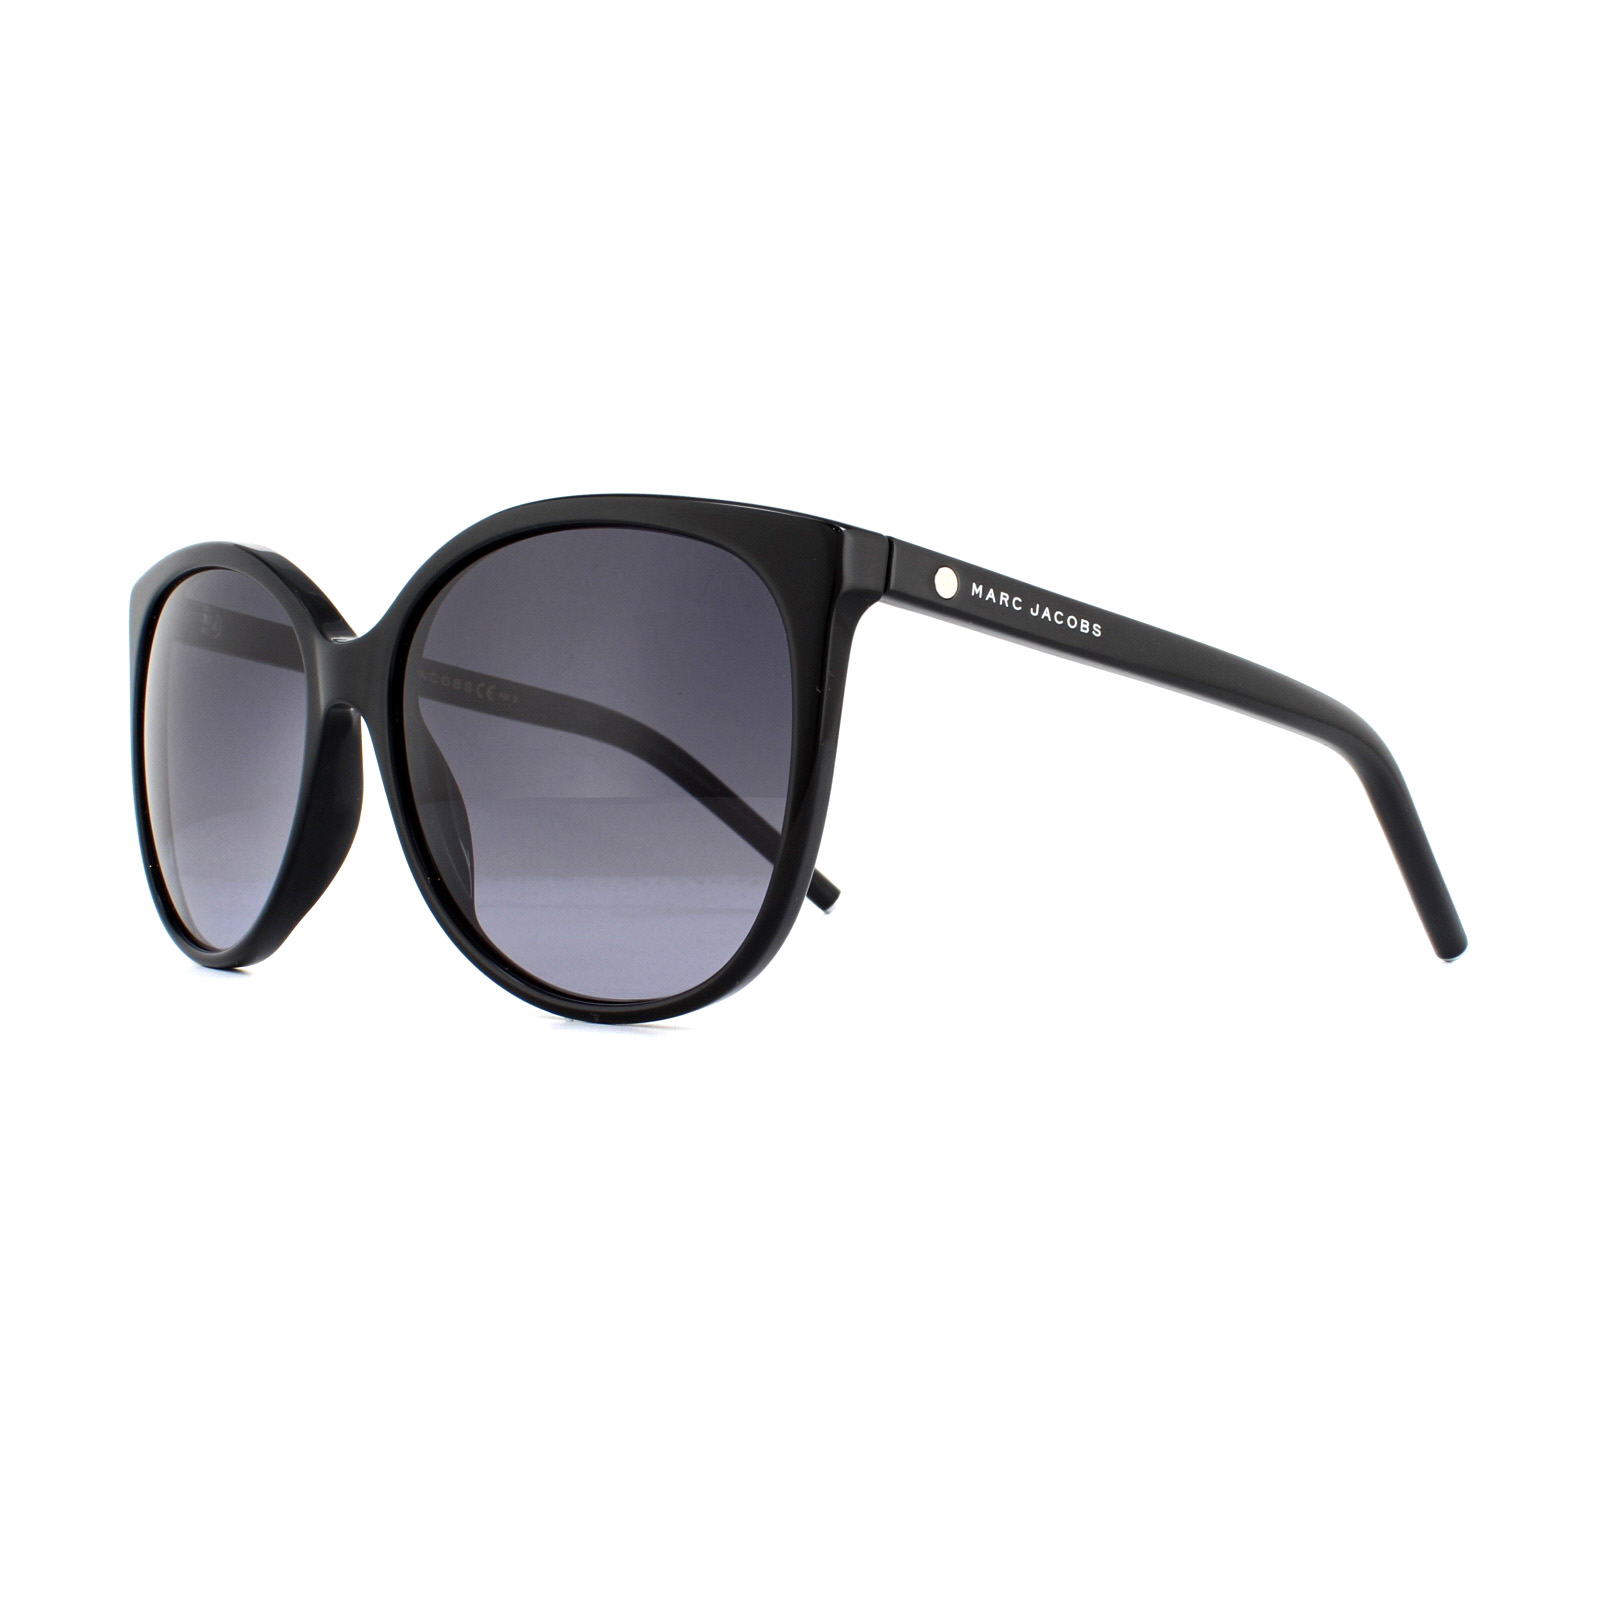 7cc927bab2 Sentinel Marc Jacobs Sunglasses MARC 79 S 807 HD Black Grey Gradient